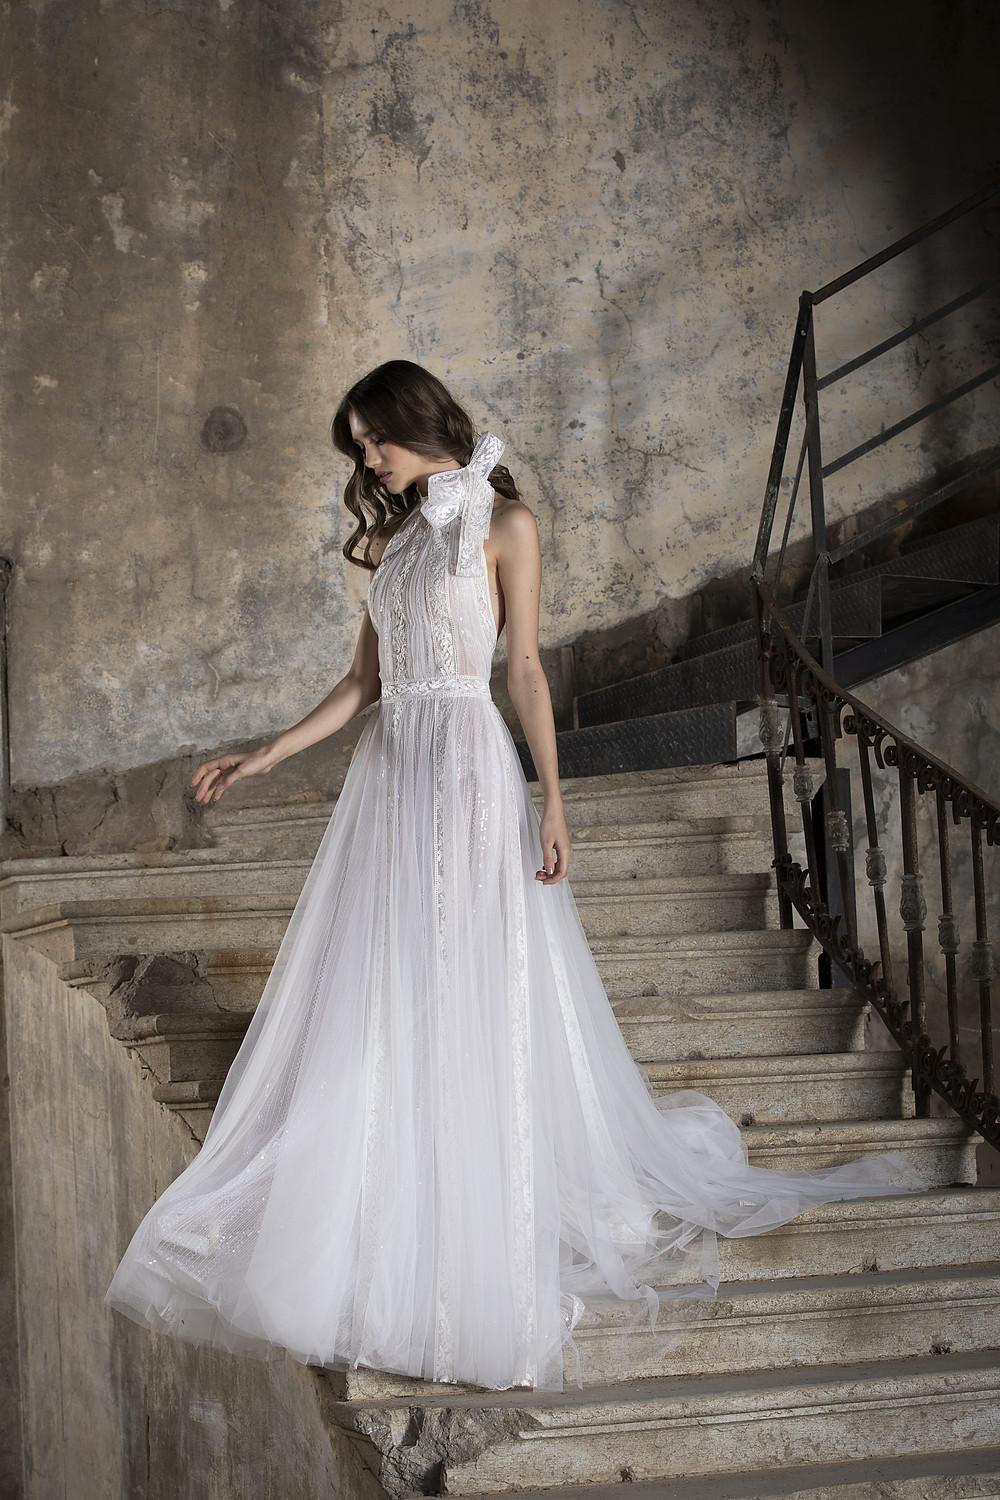 An A-line tulle wedding gown, with a bow neckline, high collar and an open back, enriched with lace strips and subtle sequined embroideries layered underneath the tulle